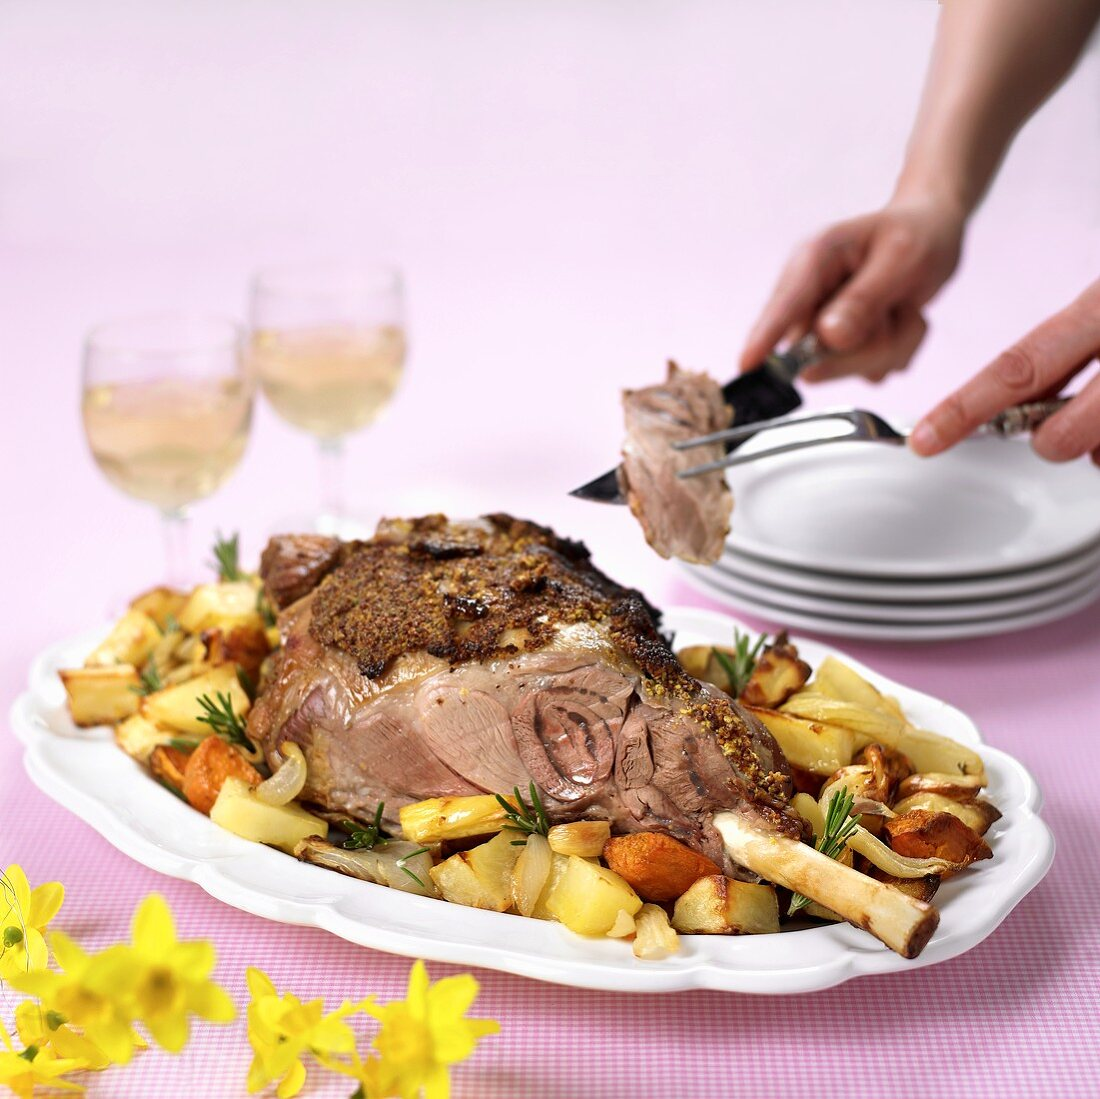 Carving leg of lamb on roasted vegetables